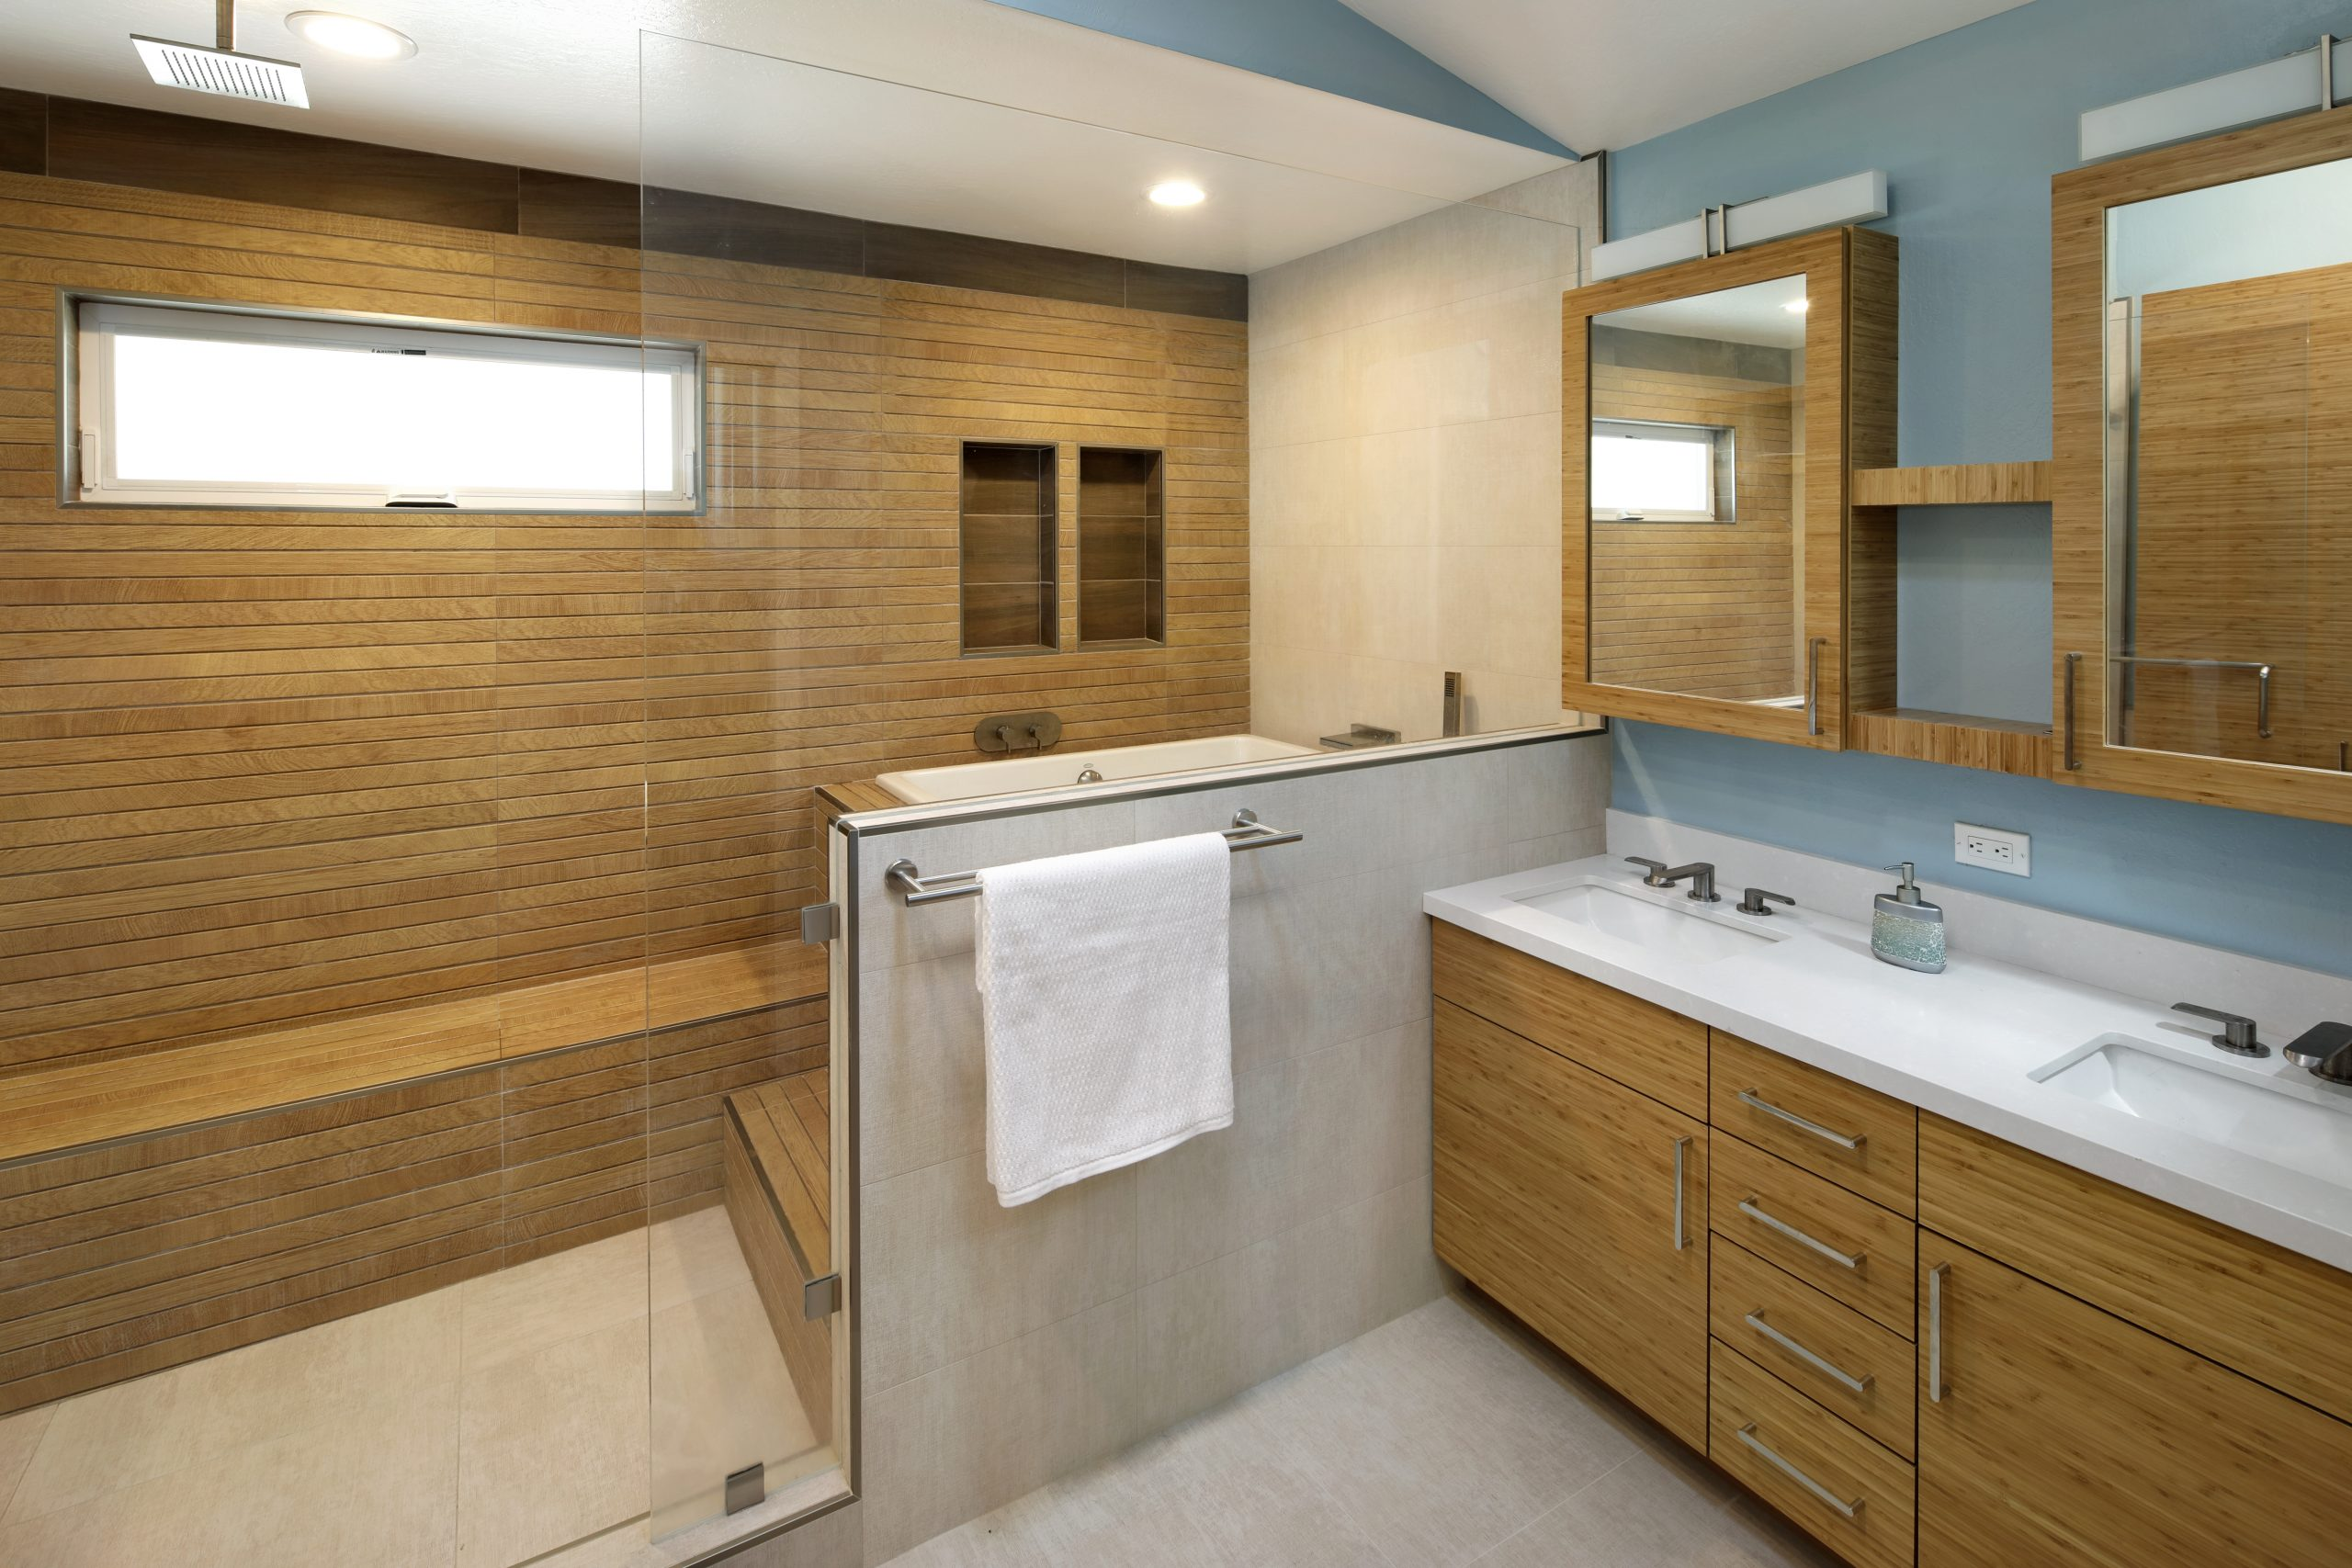 A Japanese style bathroom renovation with wooden shower and tub.